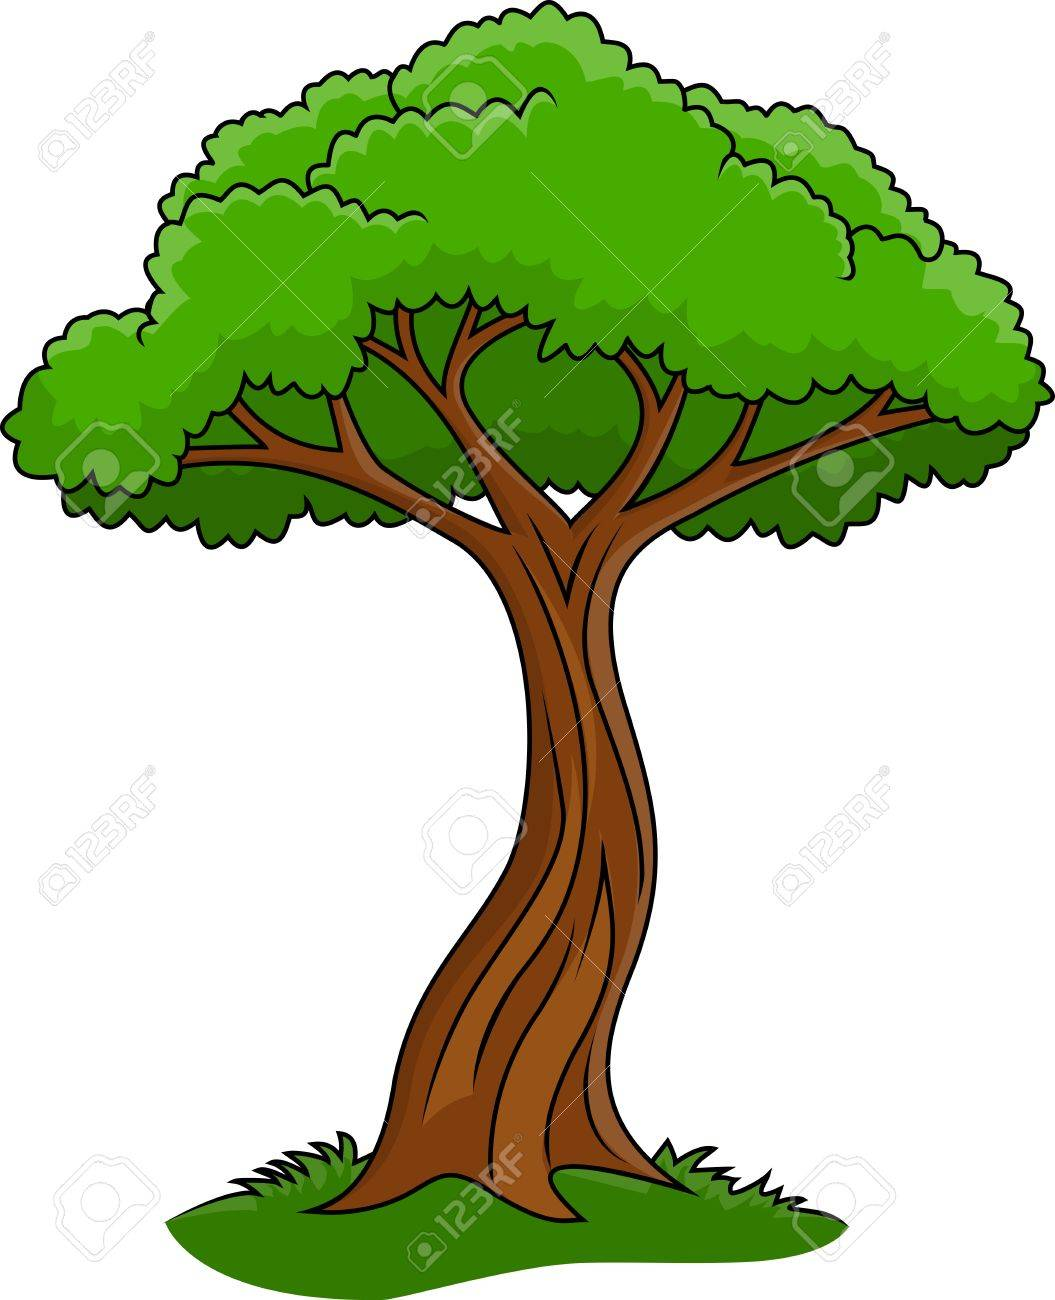 Illustration Of Tree Isolated On White Royalty Free Cliparts Vectors And Stock Illustration Image 15234320